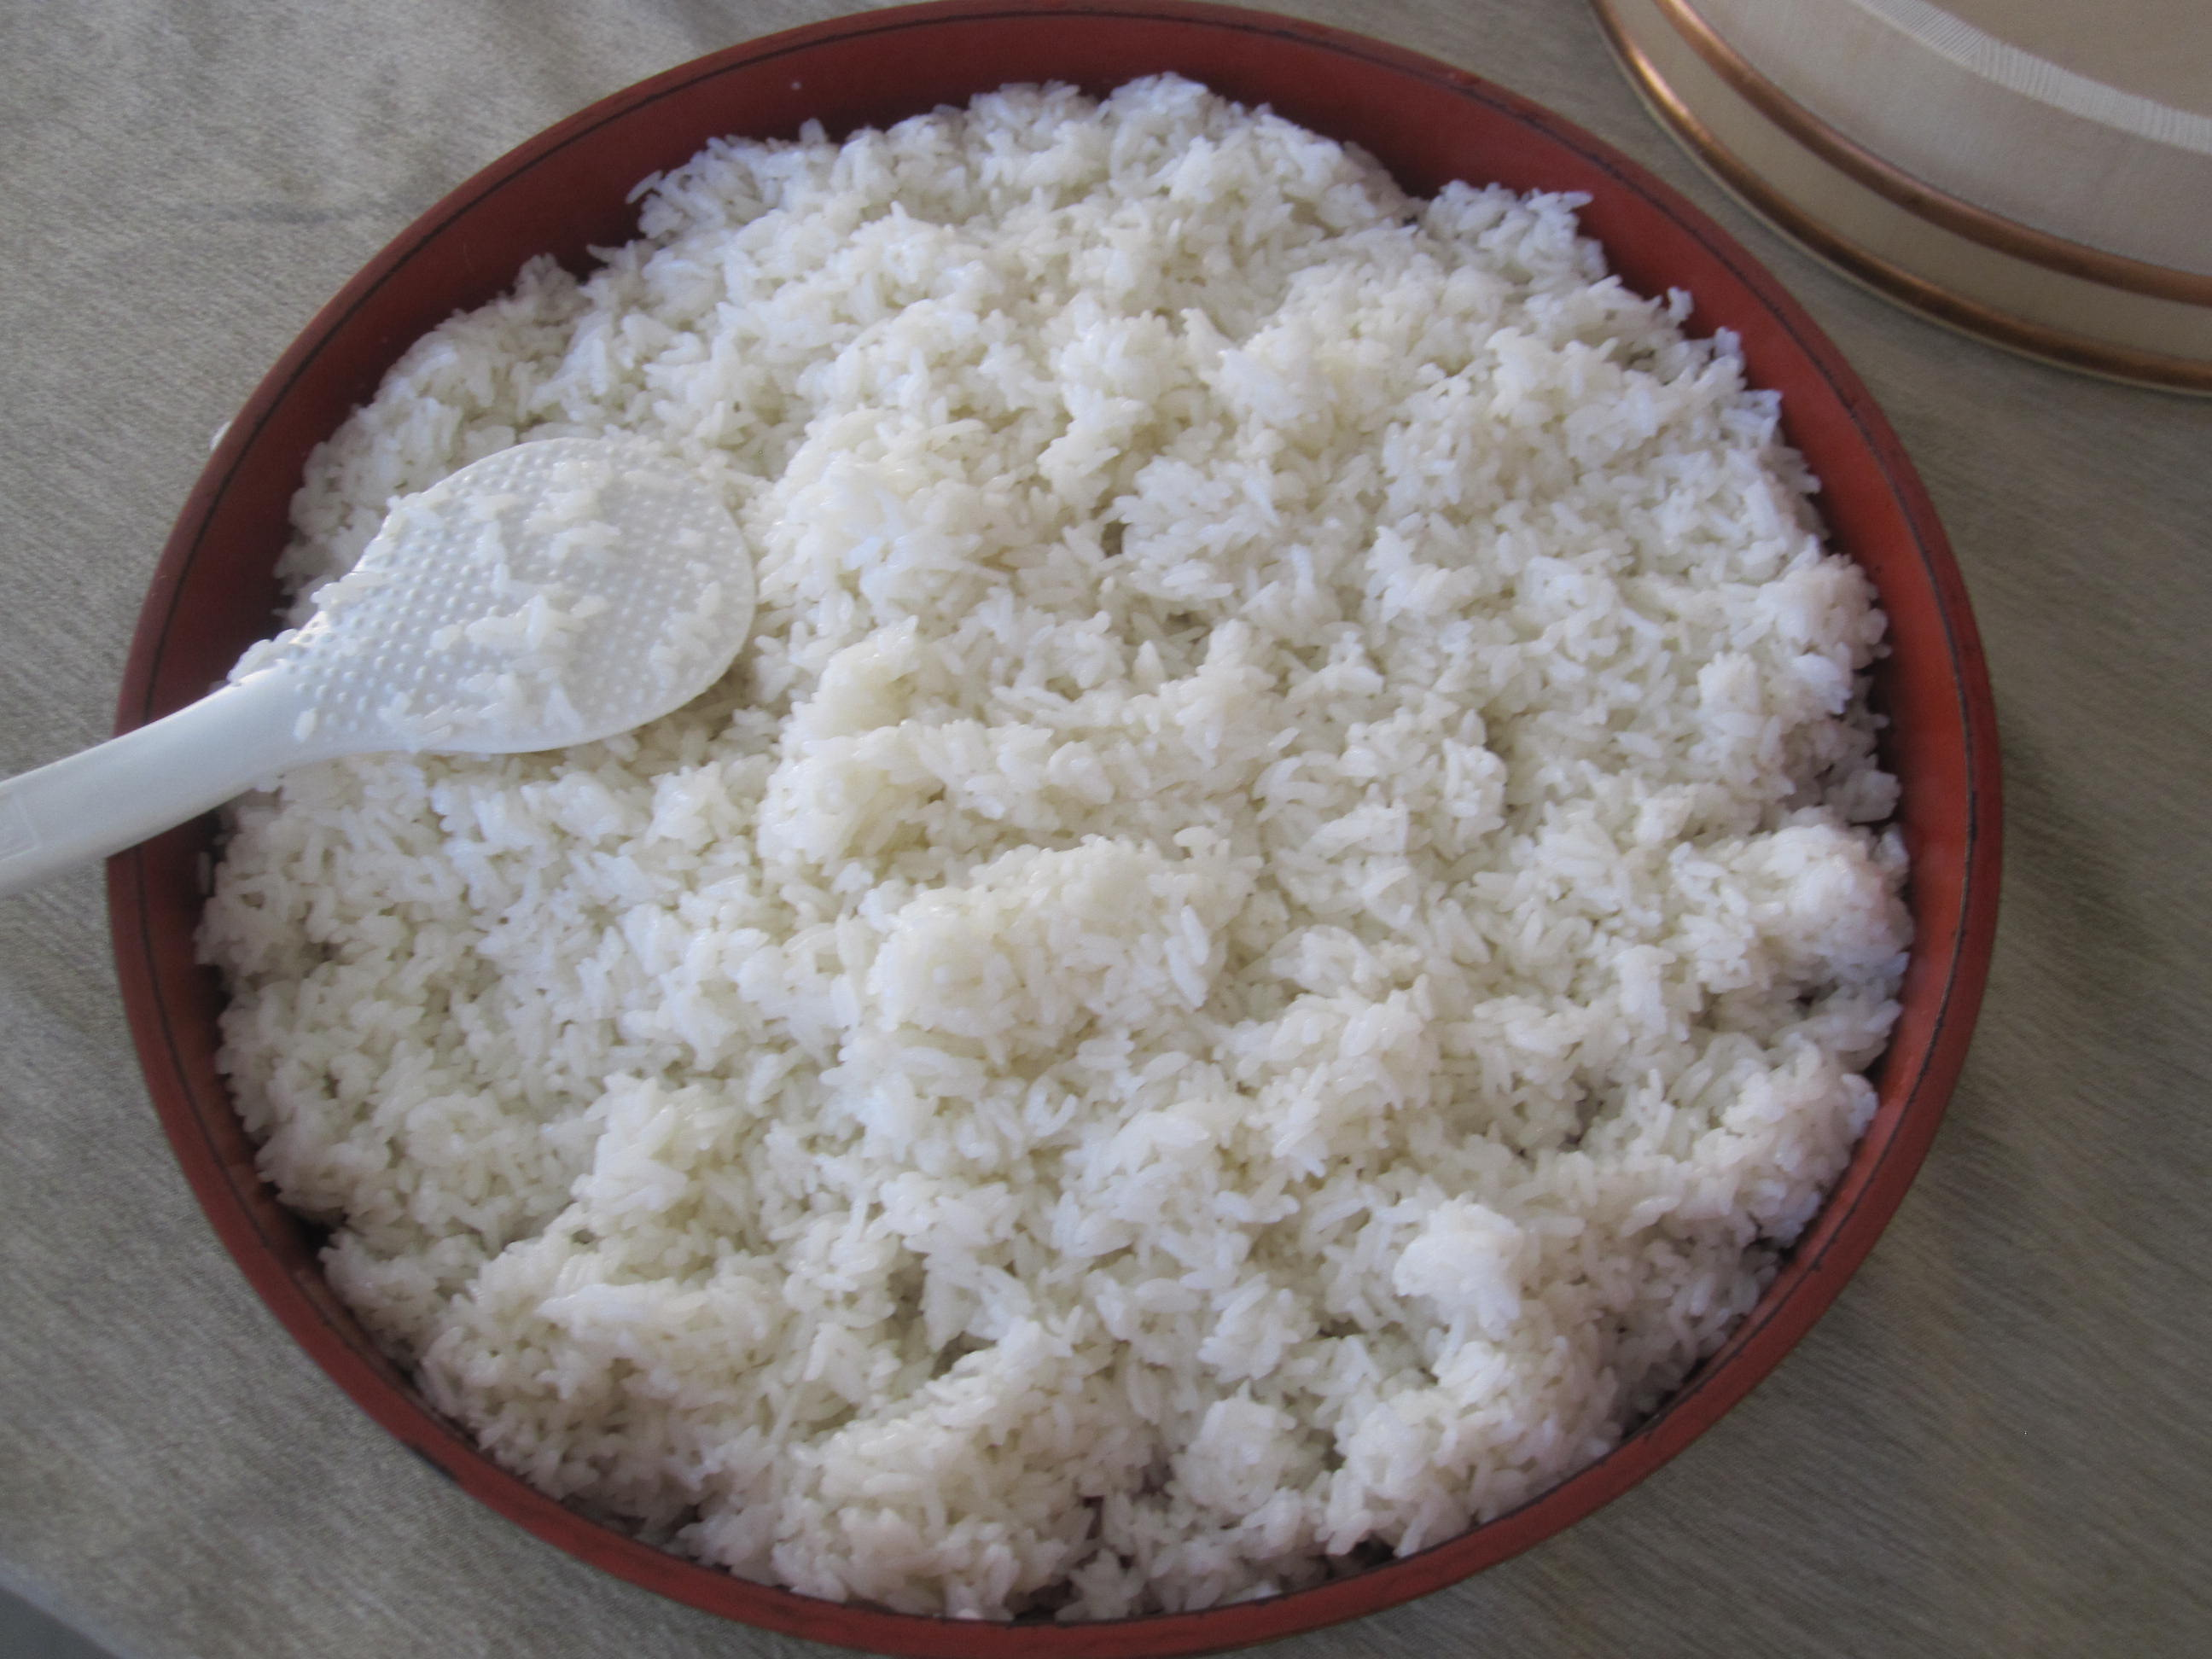 sushi rice Masaharu morimoto recommends using a rice cooker and seasoning the rice to taste start with 1/2 cup of sweetened vinegar for every 5 cups of cooked rice, adding more.